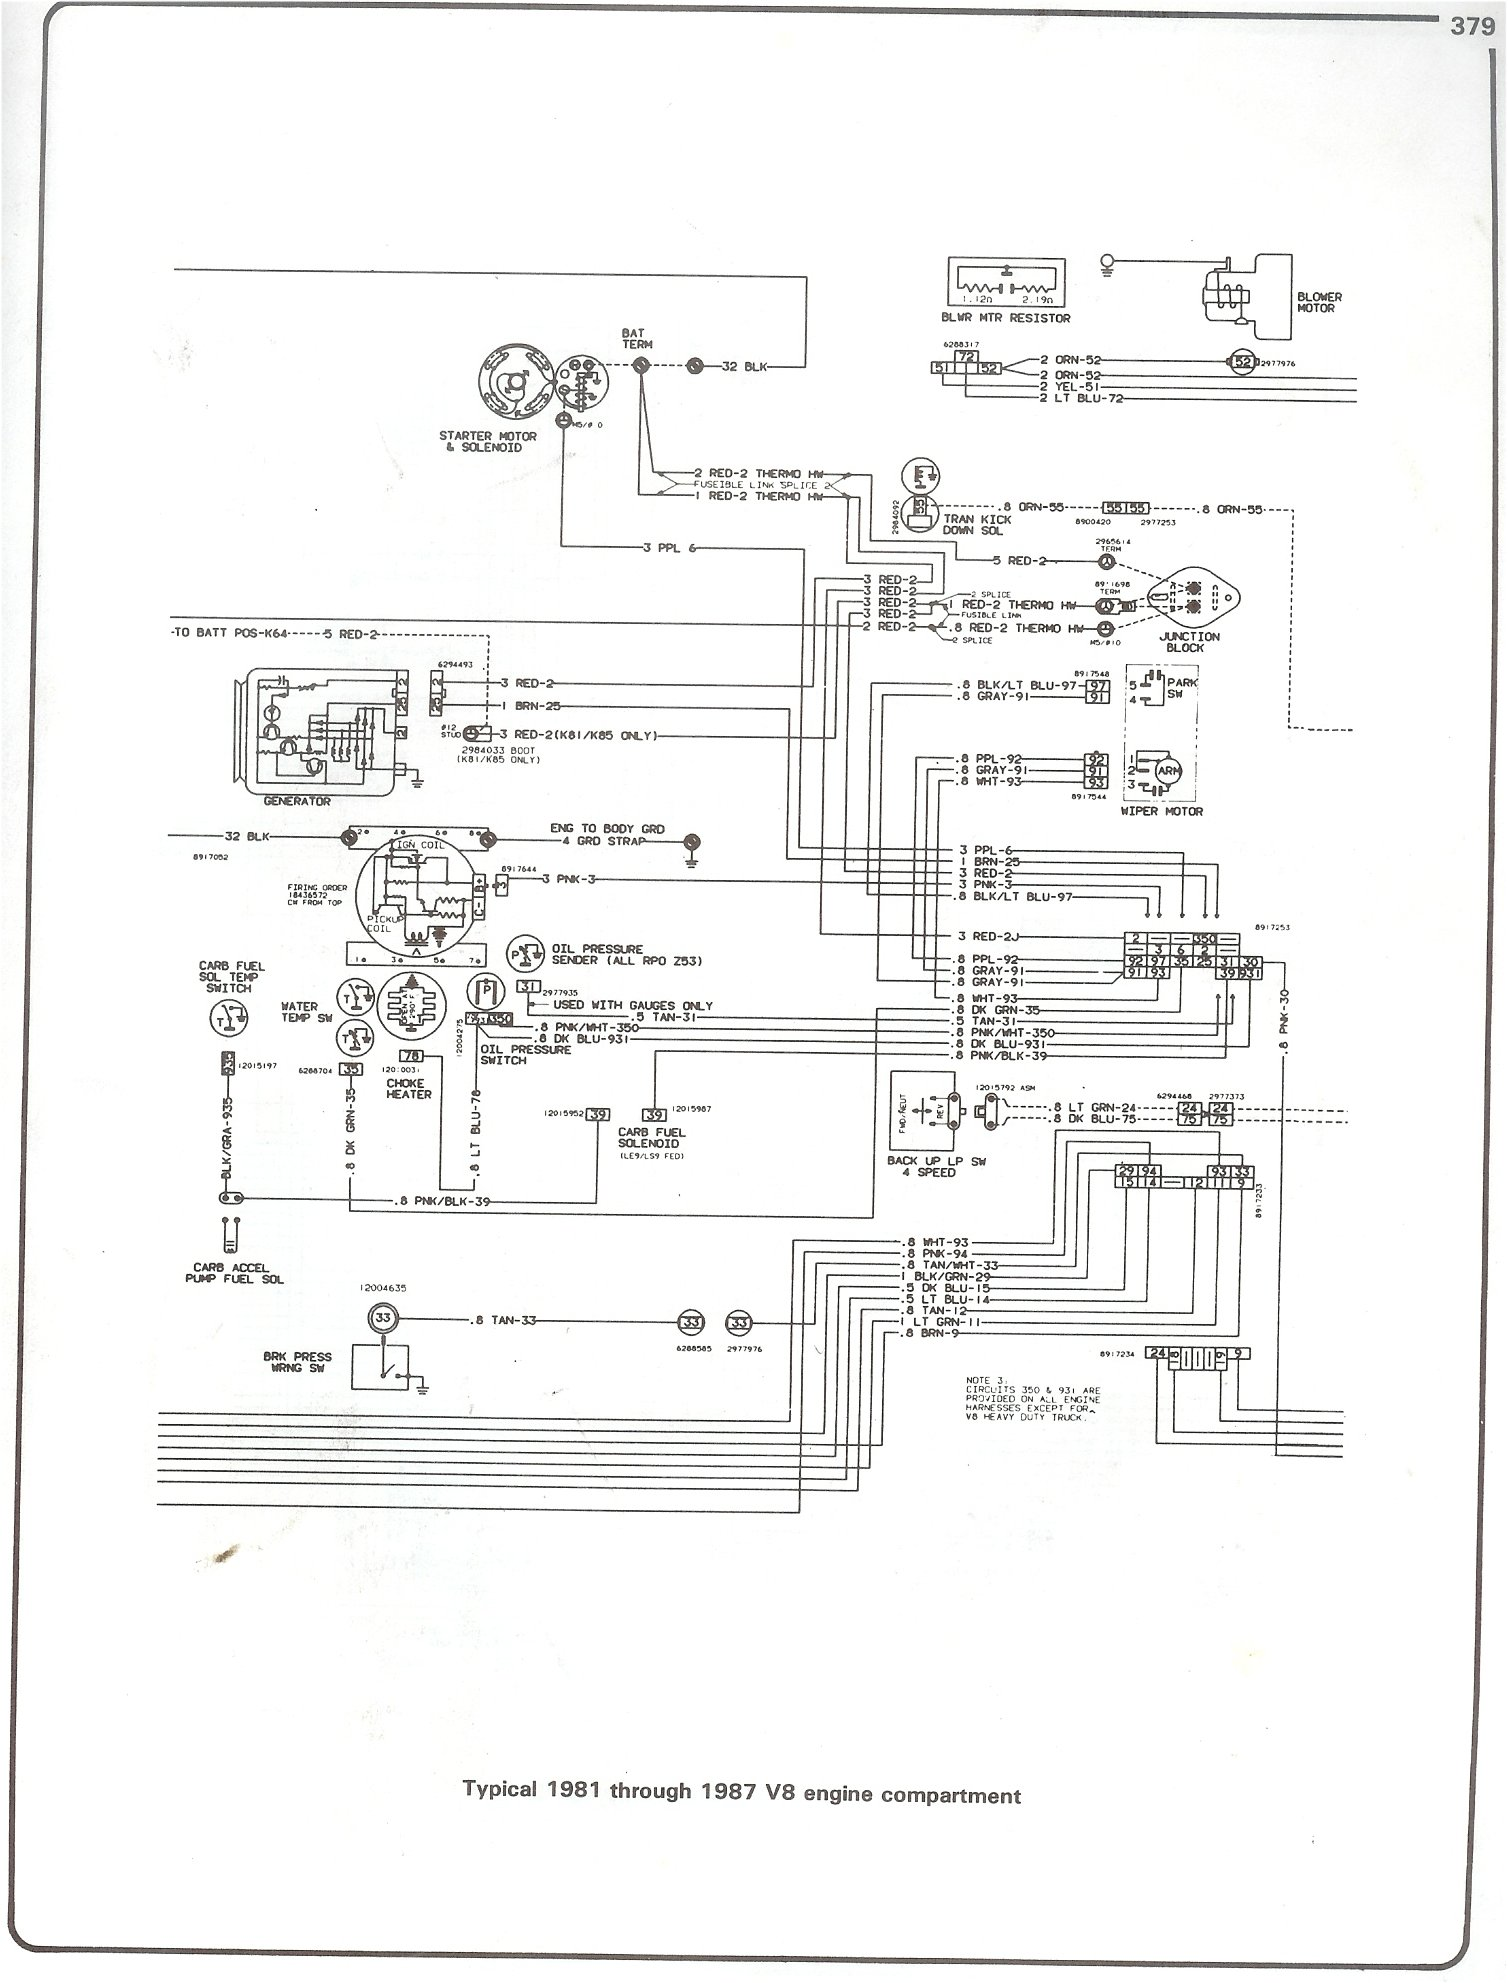 1987 gmc sierra wiring diagram basic wiring diagram u2022 rh dev spokeapartments com  1987 gmc sierra fuel pump wiring diagram